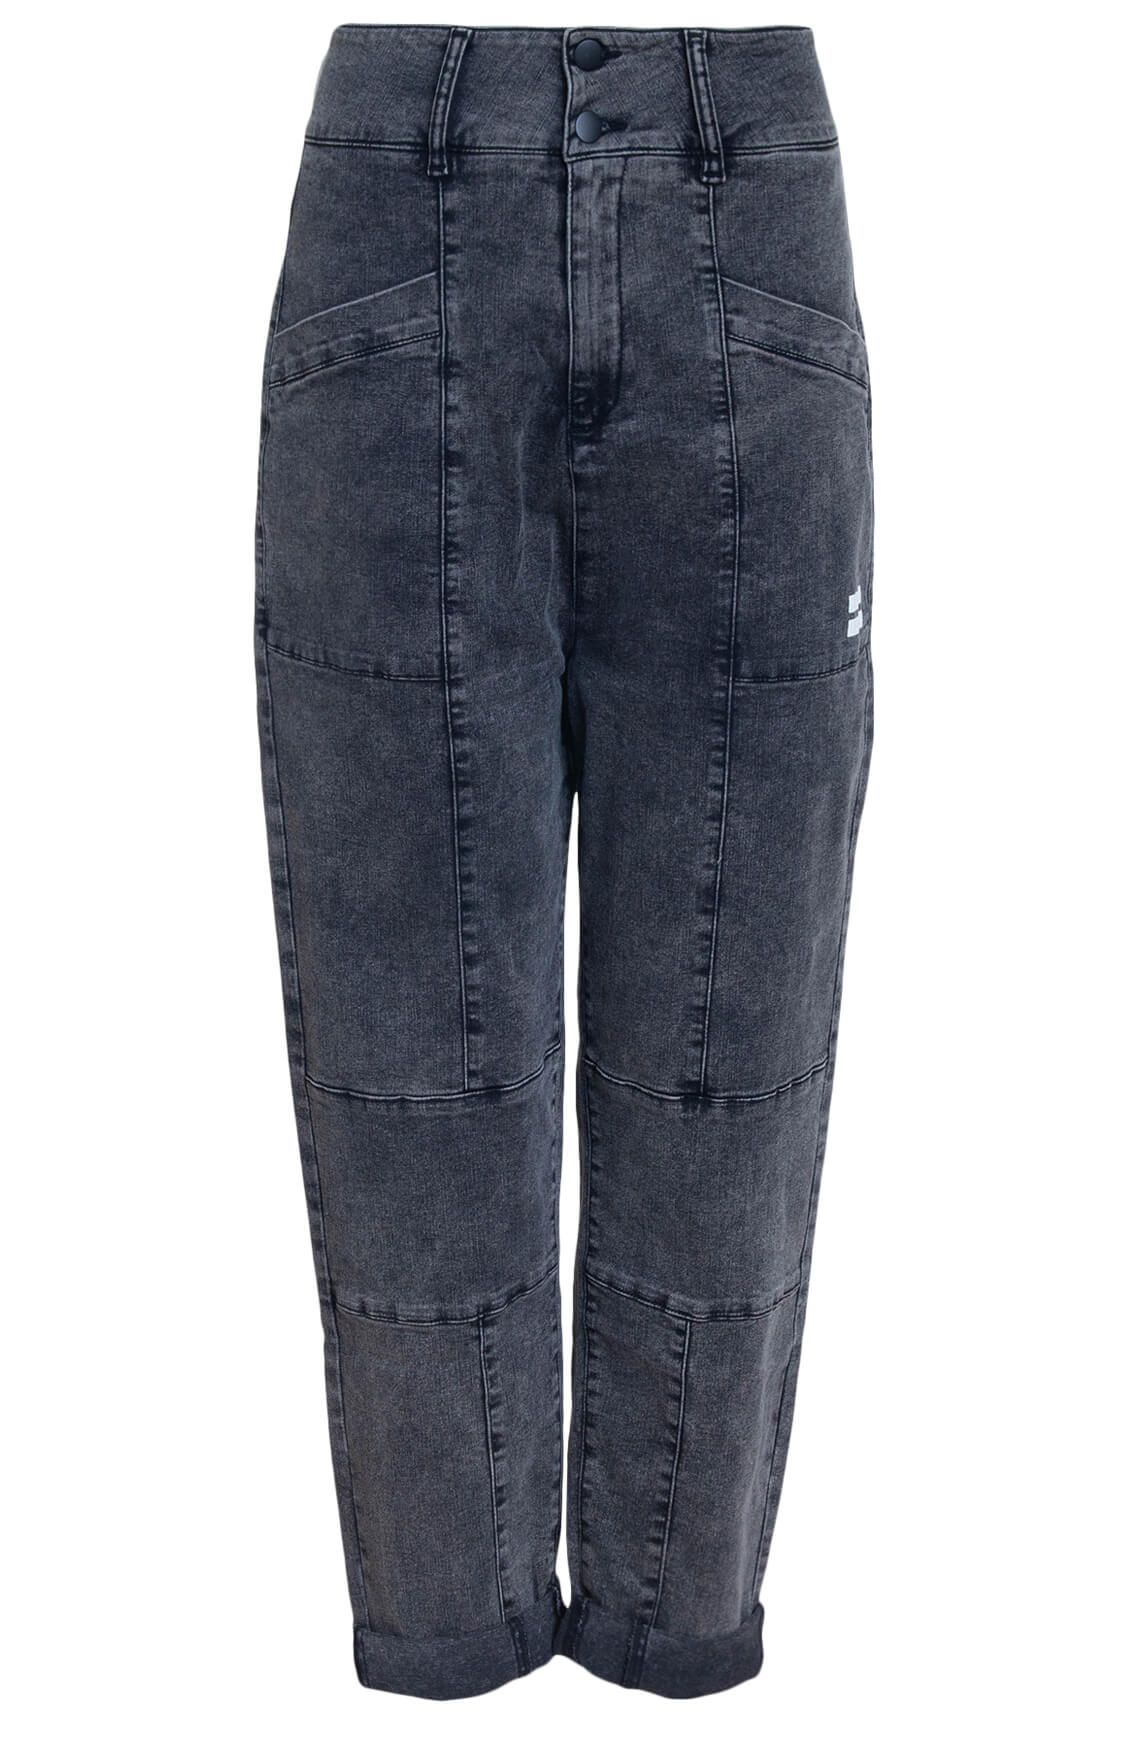 10 Days Dames Washed jeans Grijs